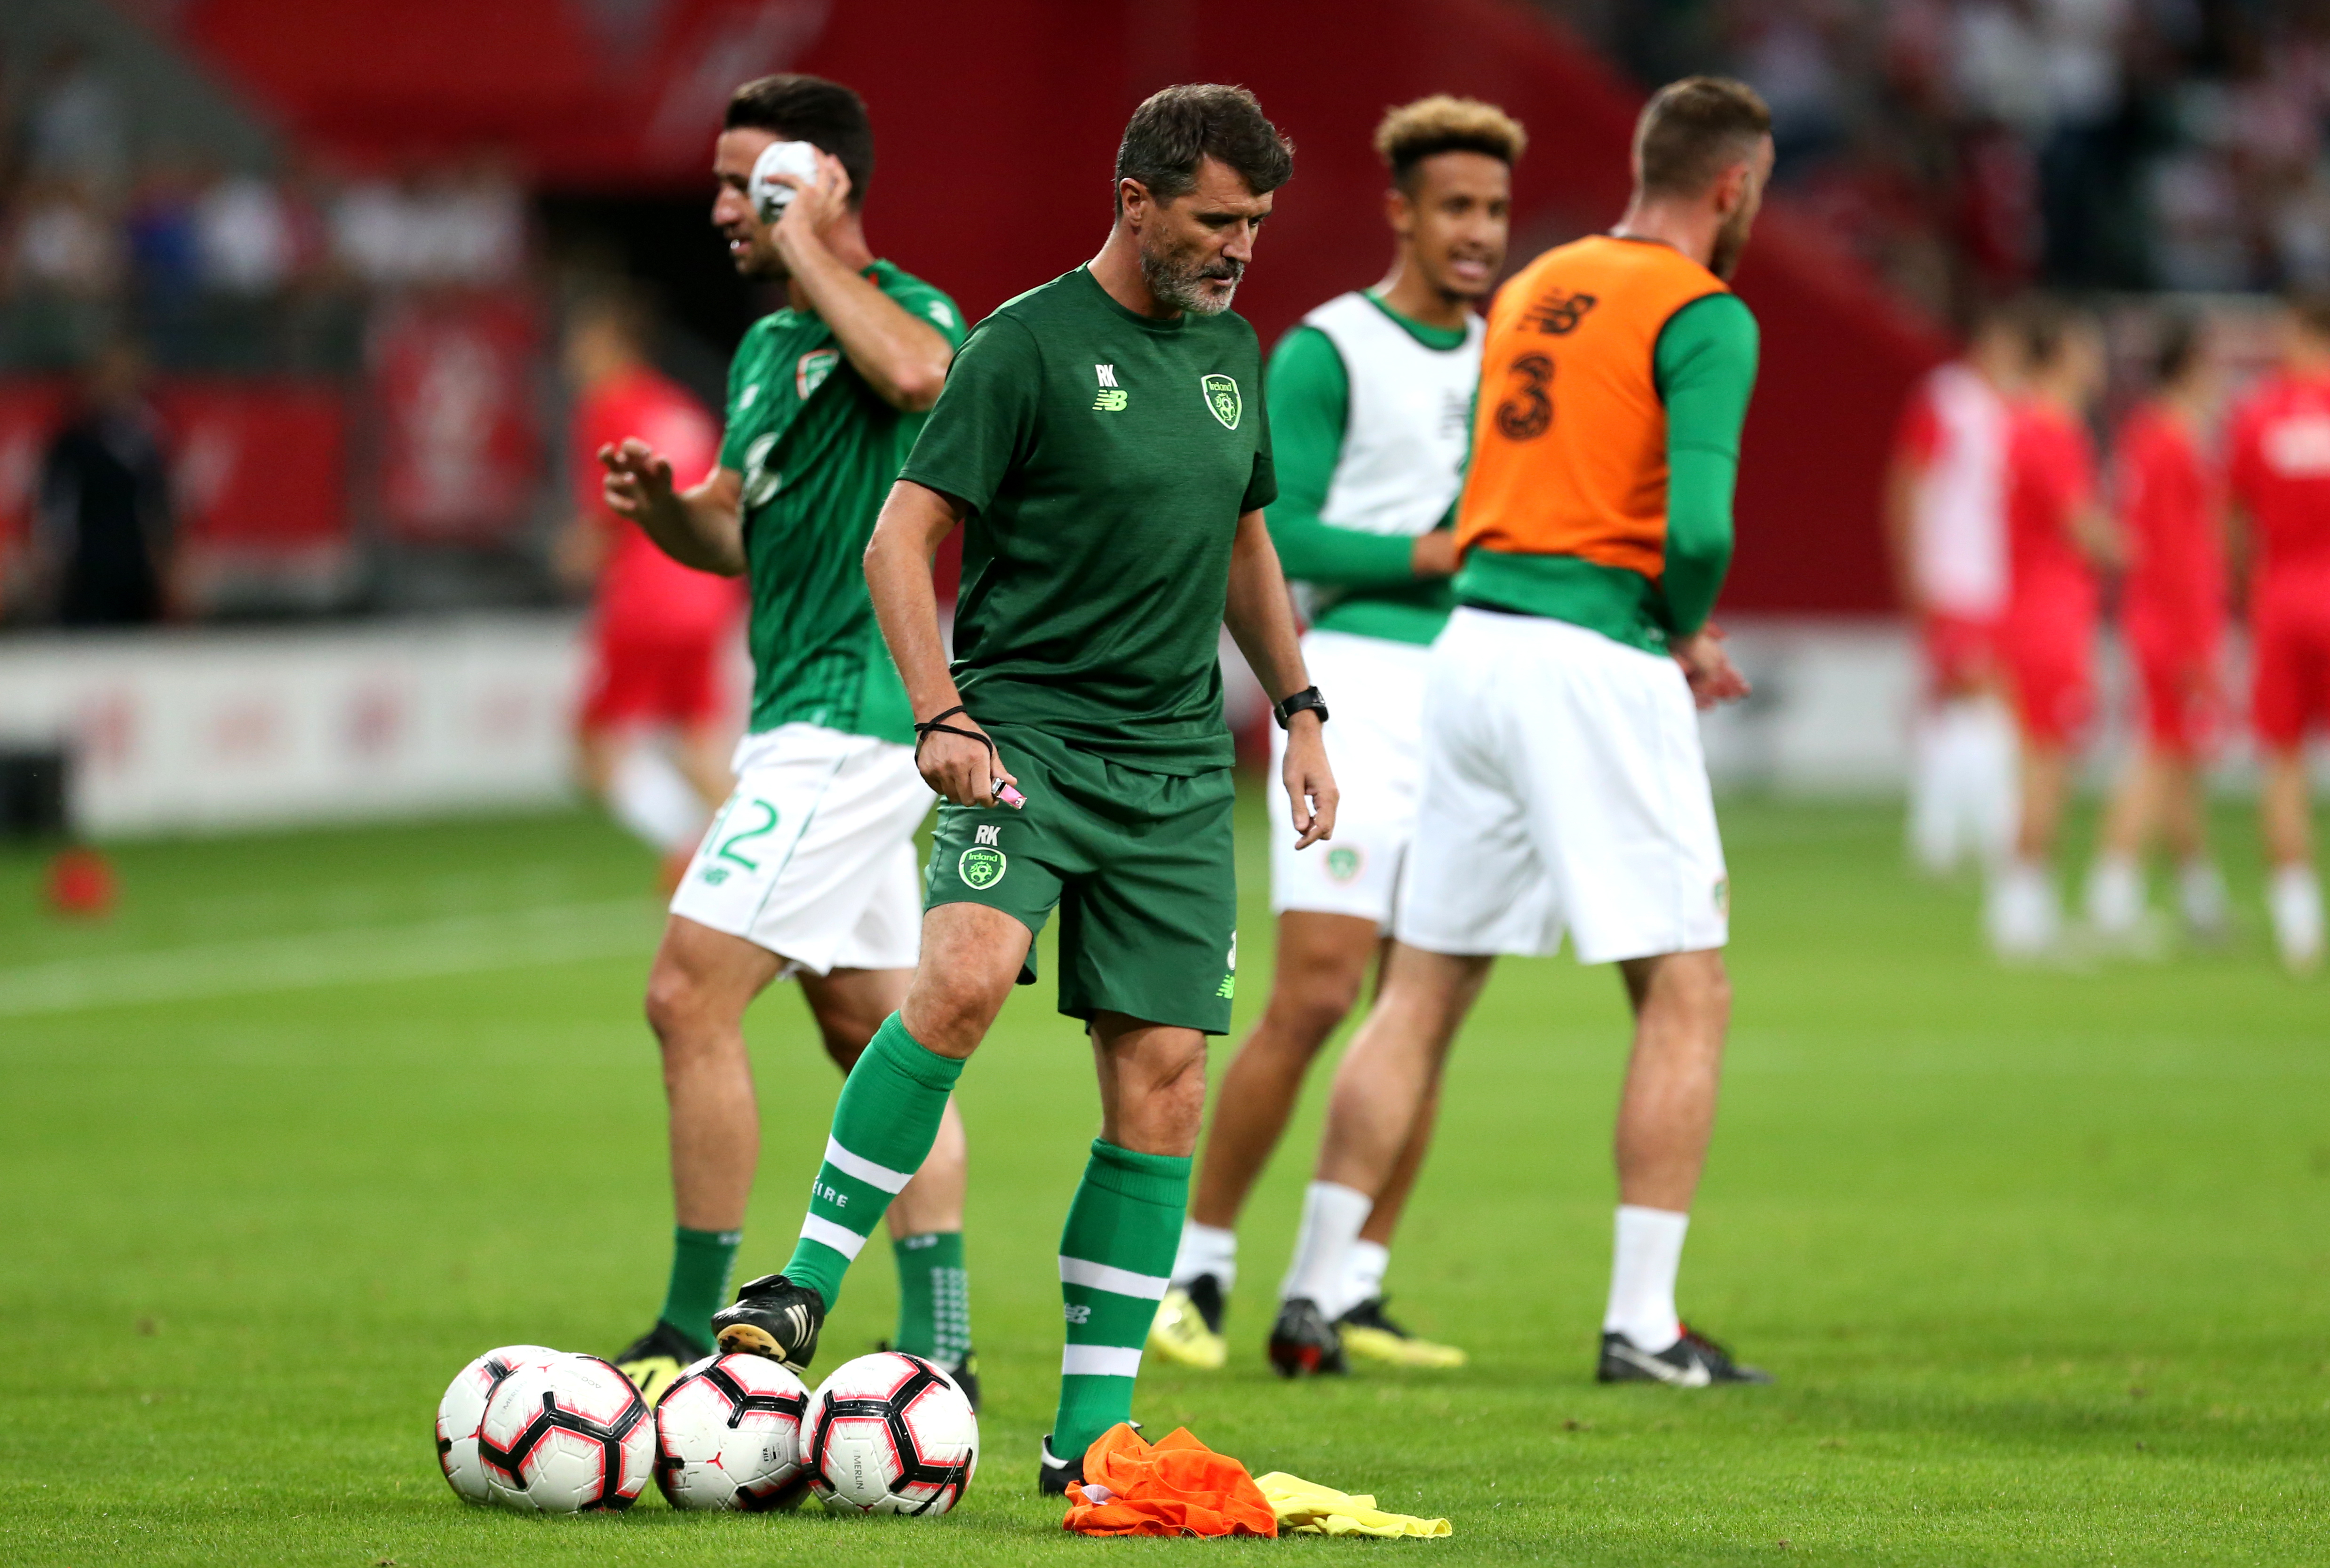 Roy Keane is Martin O'Neill's assistant in the Republic of Ireland set up